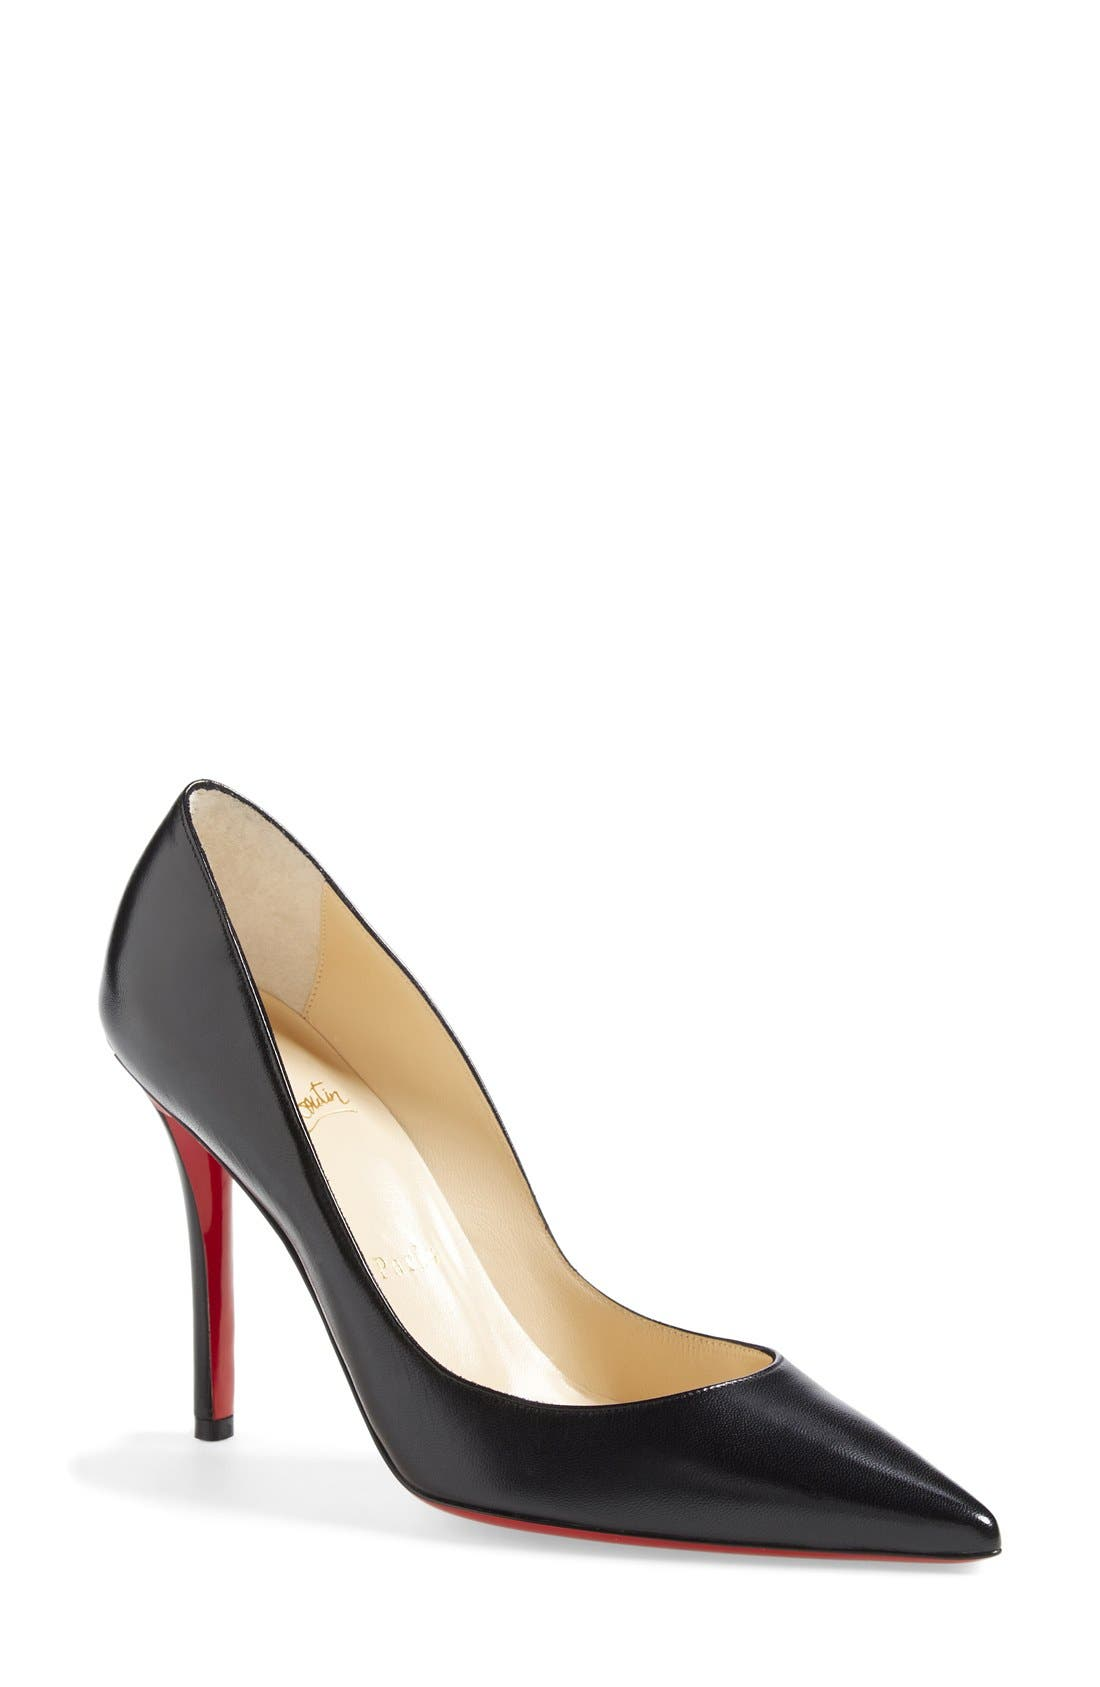 'Apostrophy' Pointy Toe Pump,                             Main thumbnail 2, color,